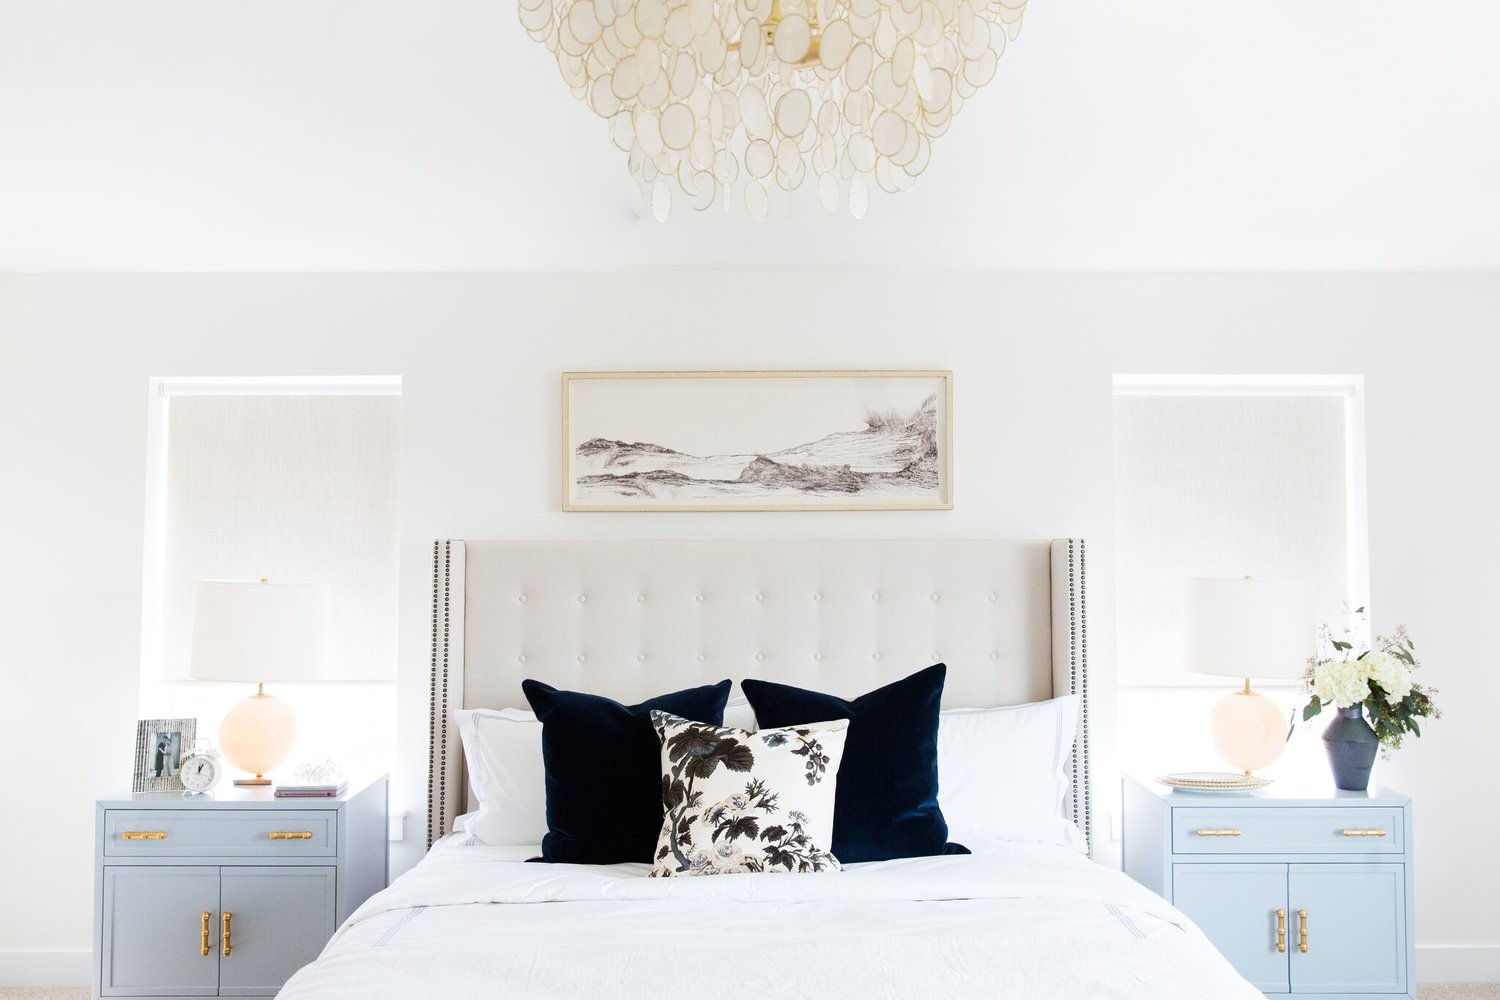 This is very similar to our current bed frame, but I really like how tall the headboard is on this one. It seems to elongate the room. Also, the dark pillows are a great look!